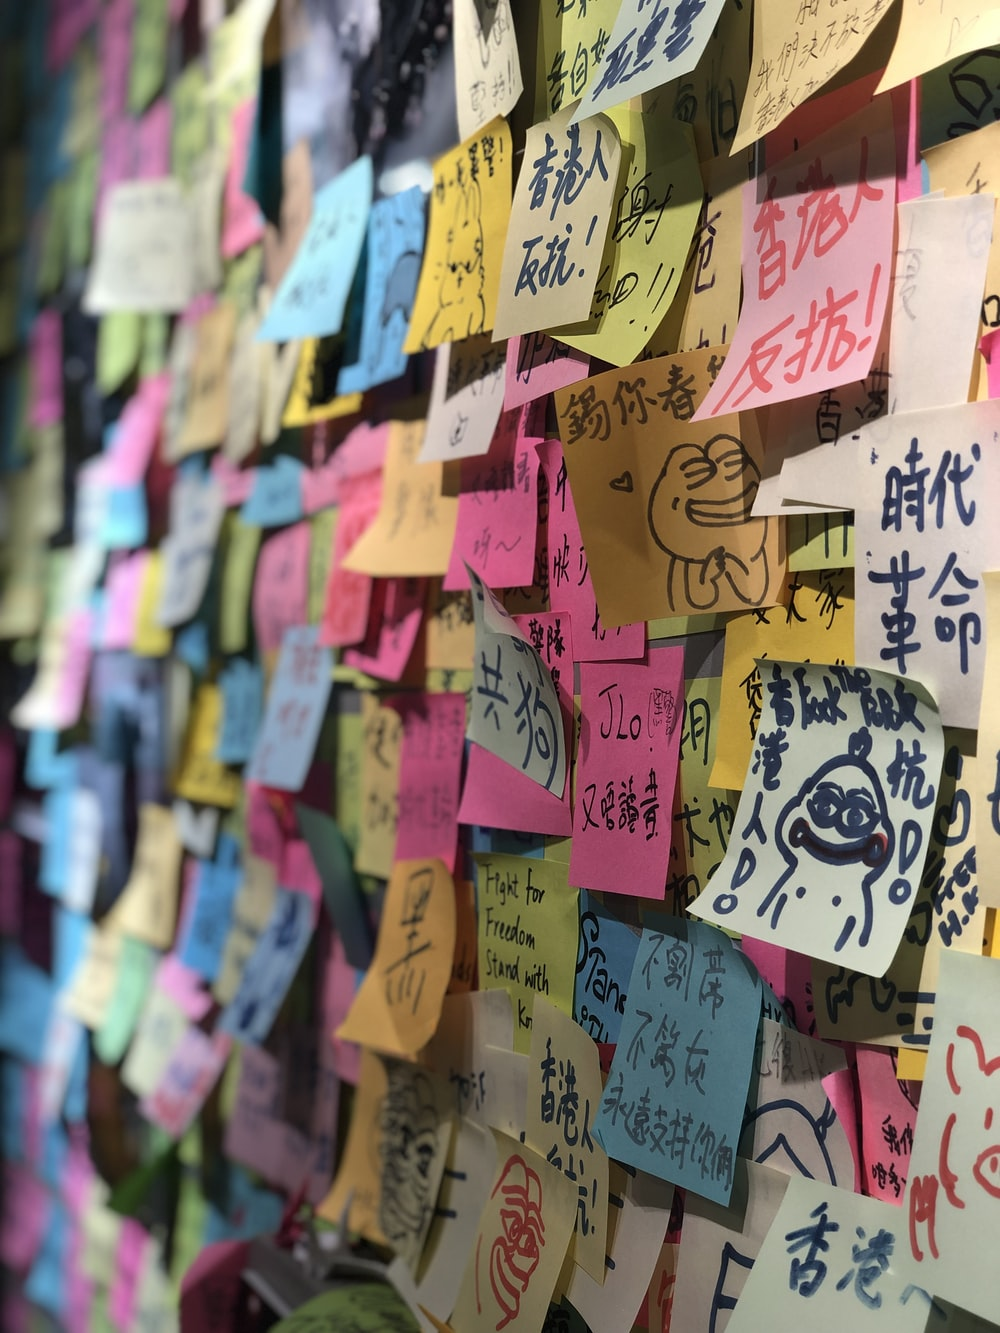 stickynotes on wall